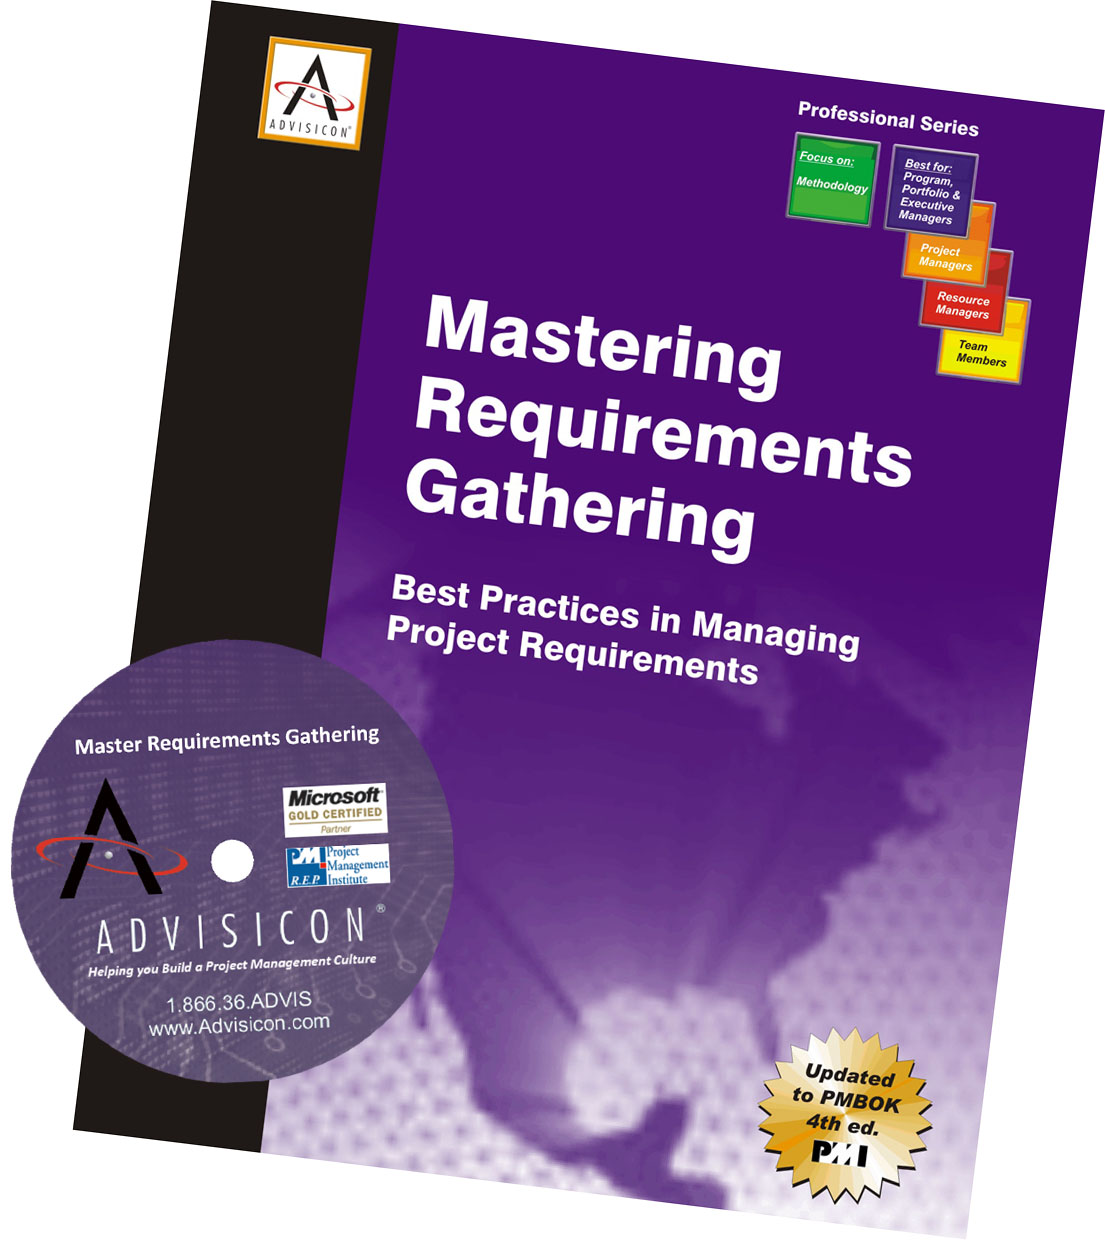 Mastering Requirements Gathering book & CD